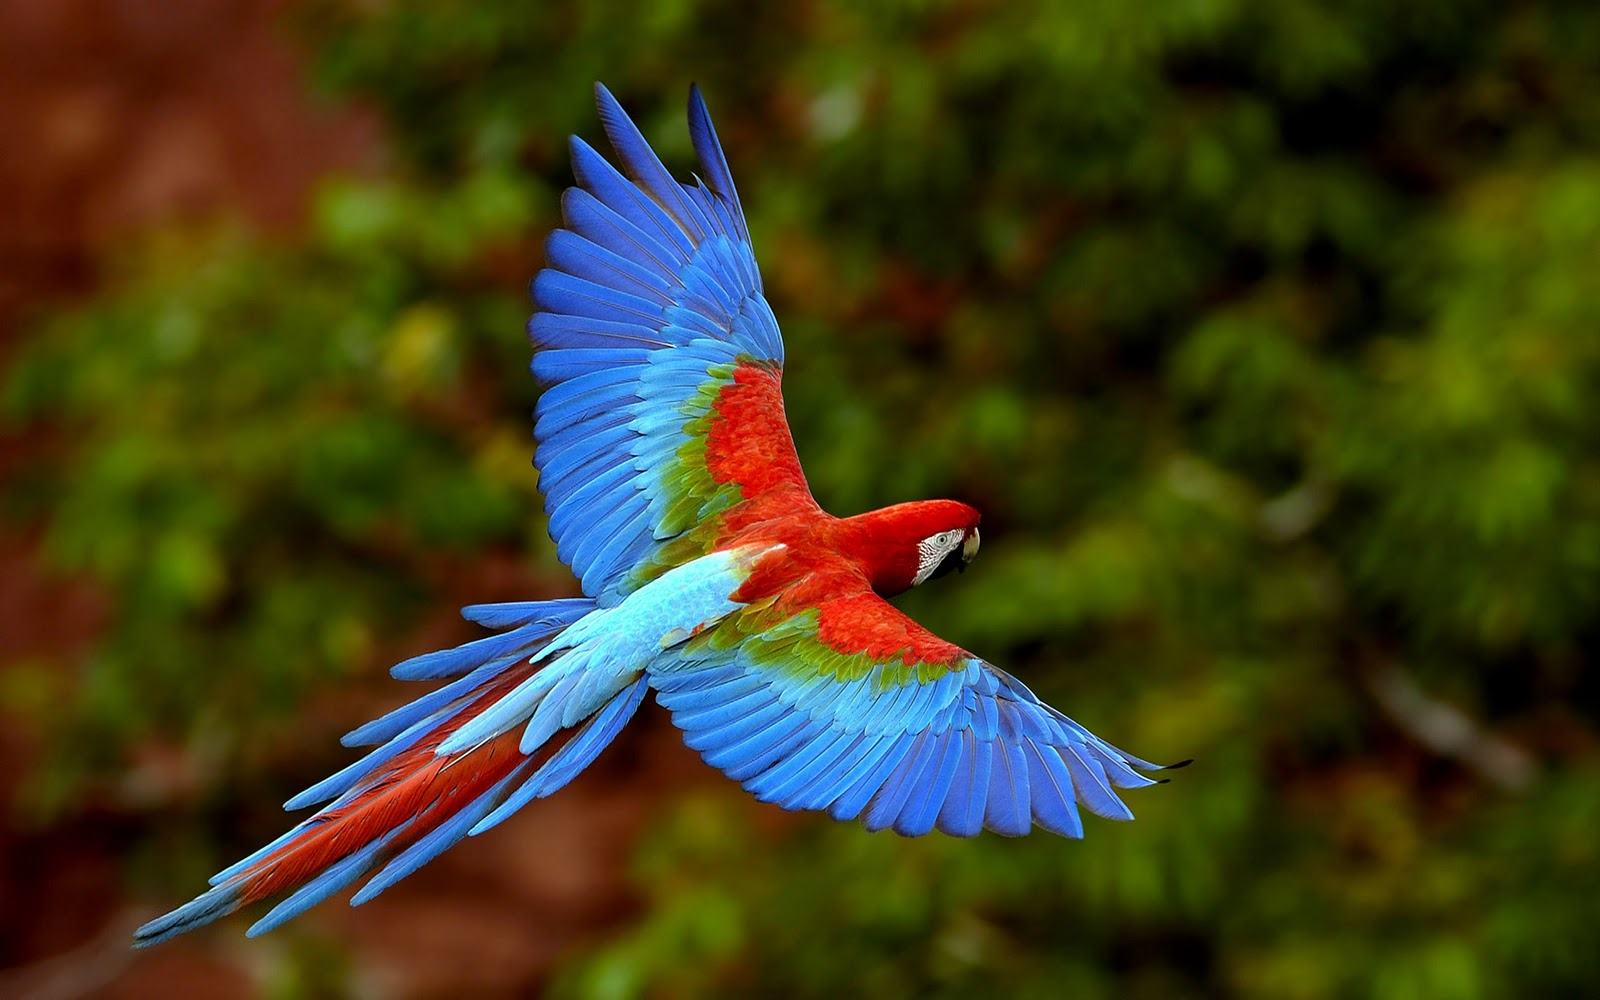 amazing pictures of nature free download apf 15